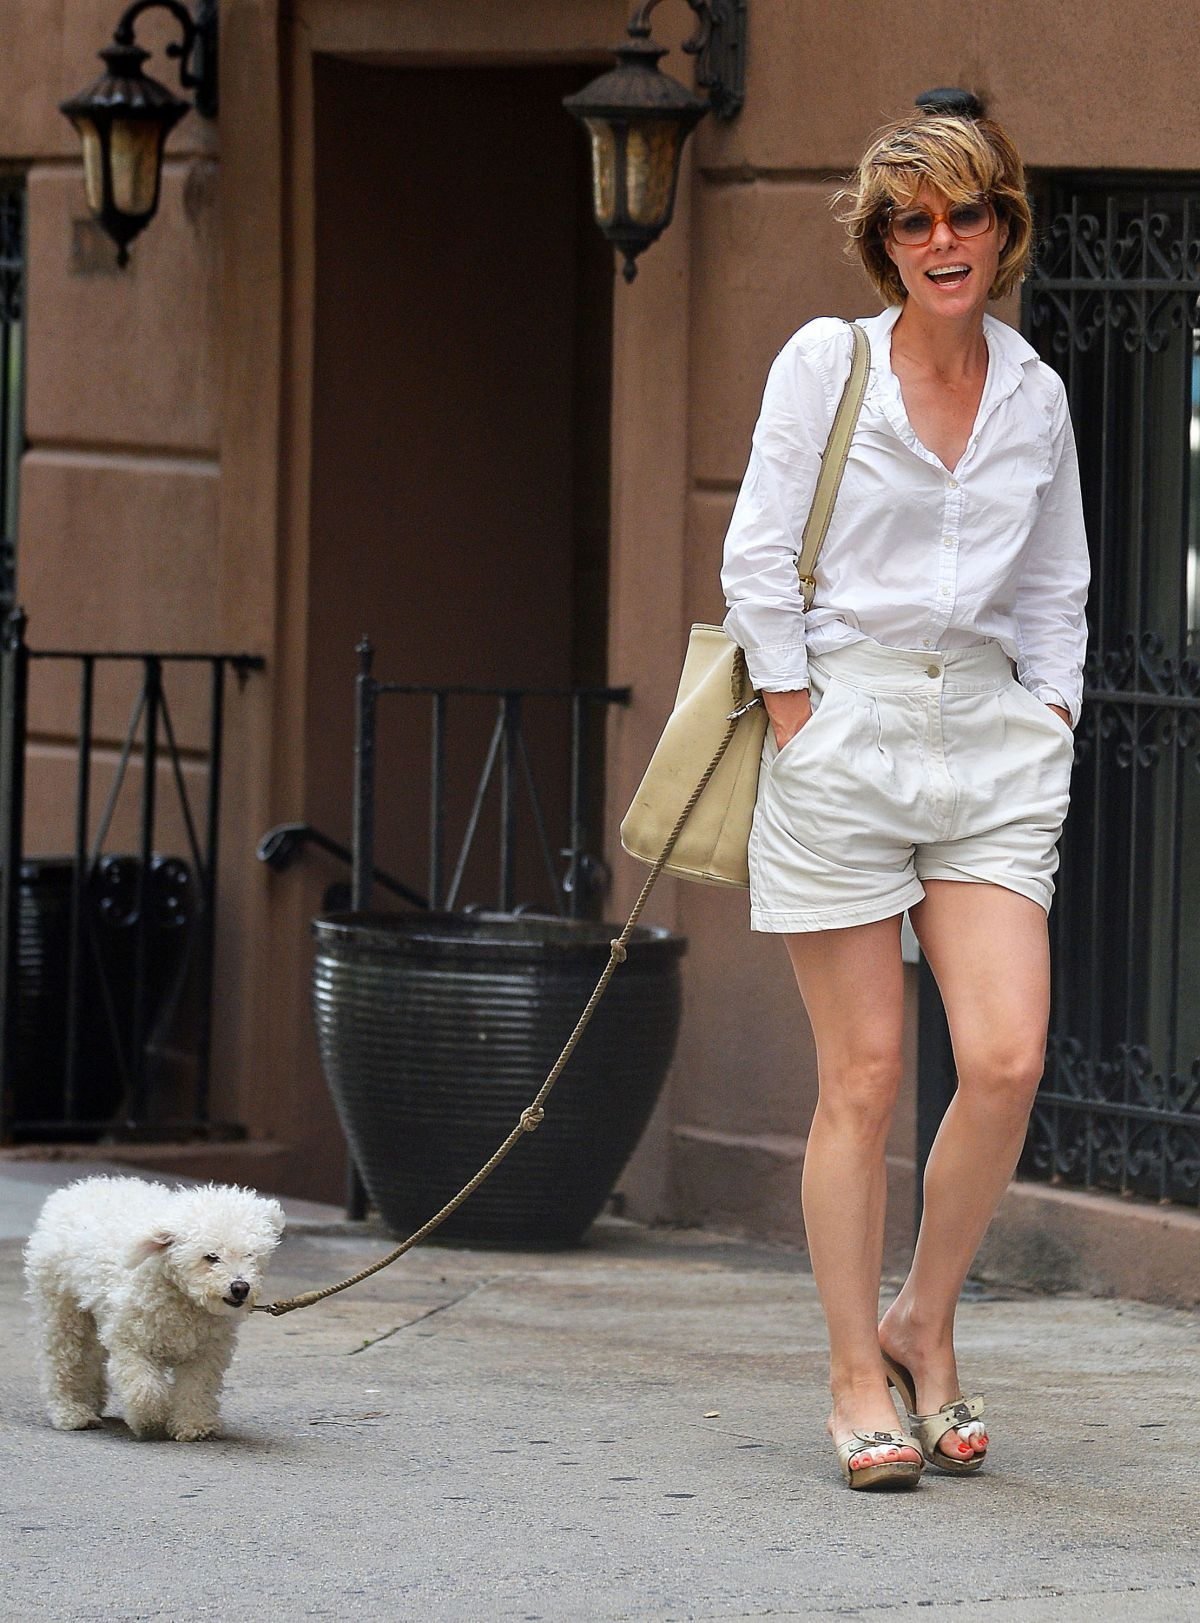 Parker Posey Free